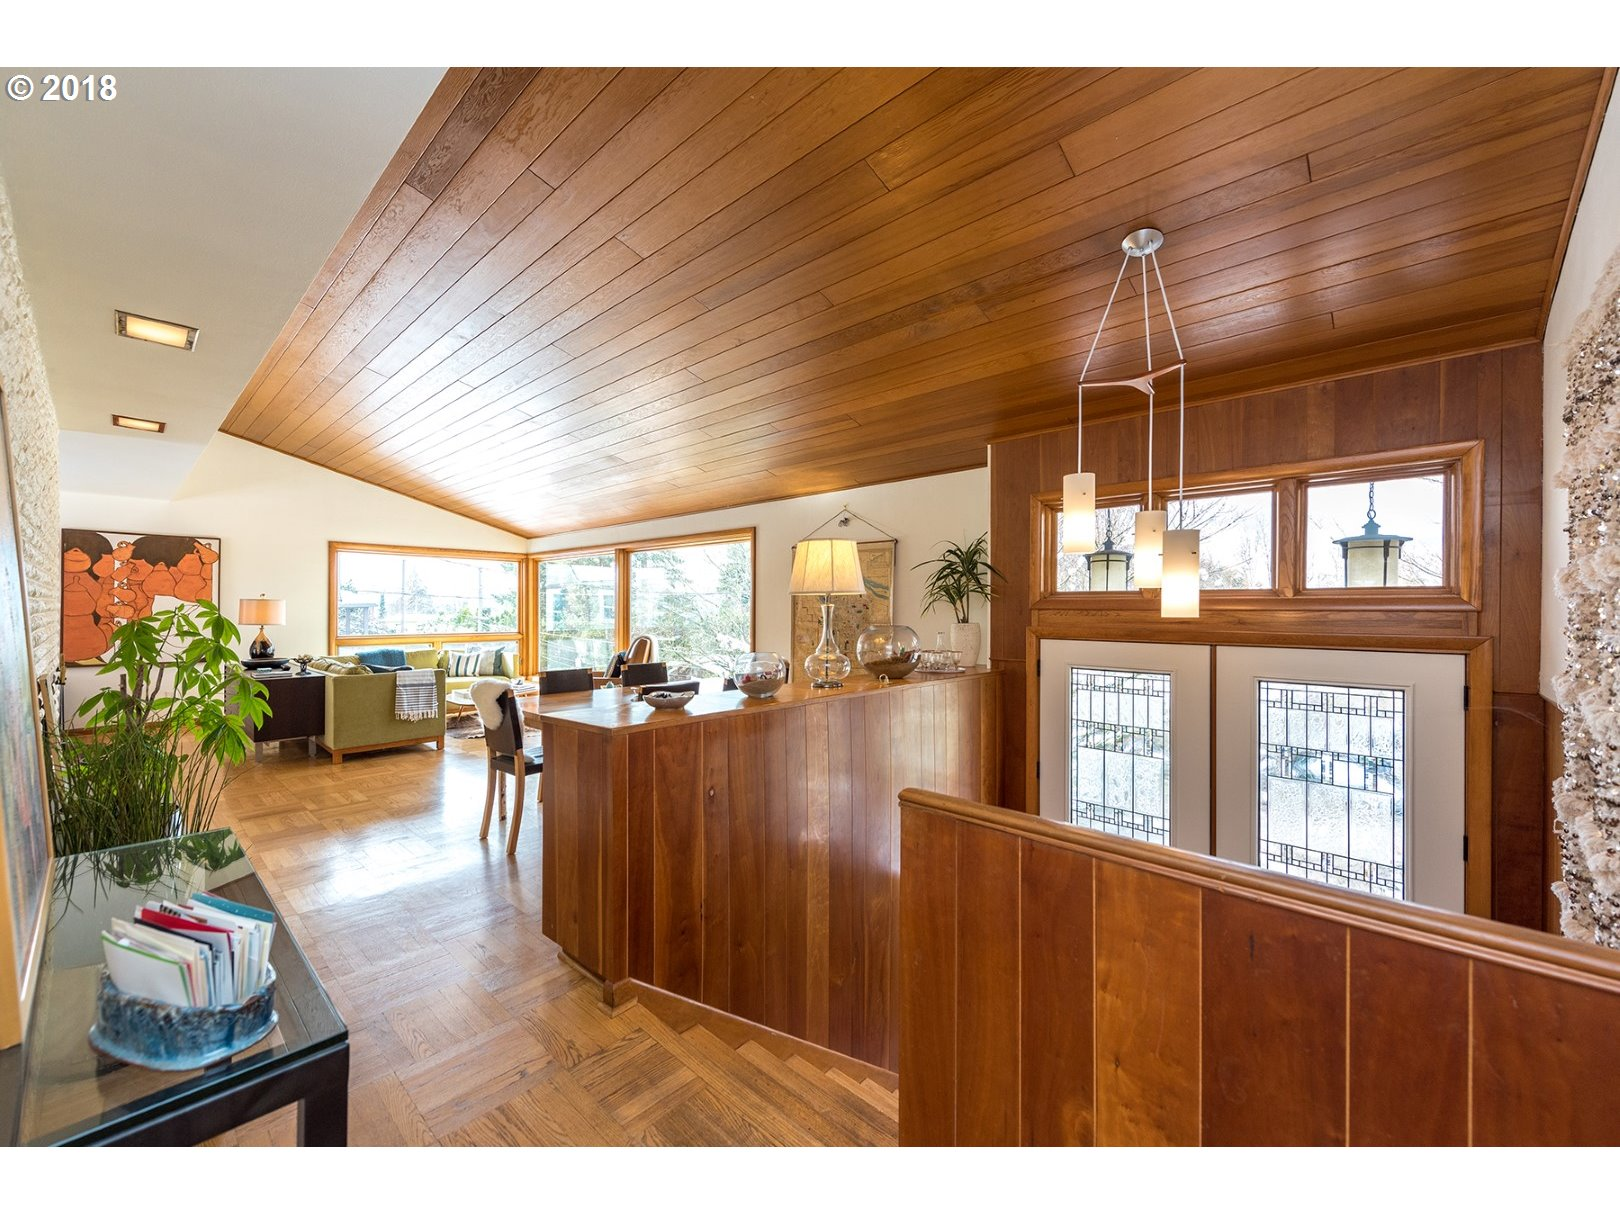 2969 sq. ft 3 bedrooms 2 bathrooms  House For Sale,Portland, OR